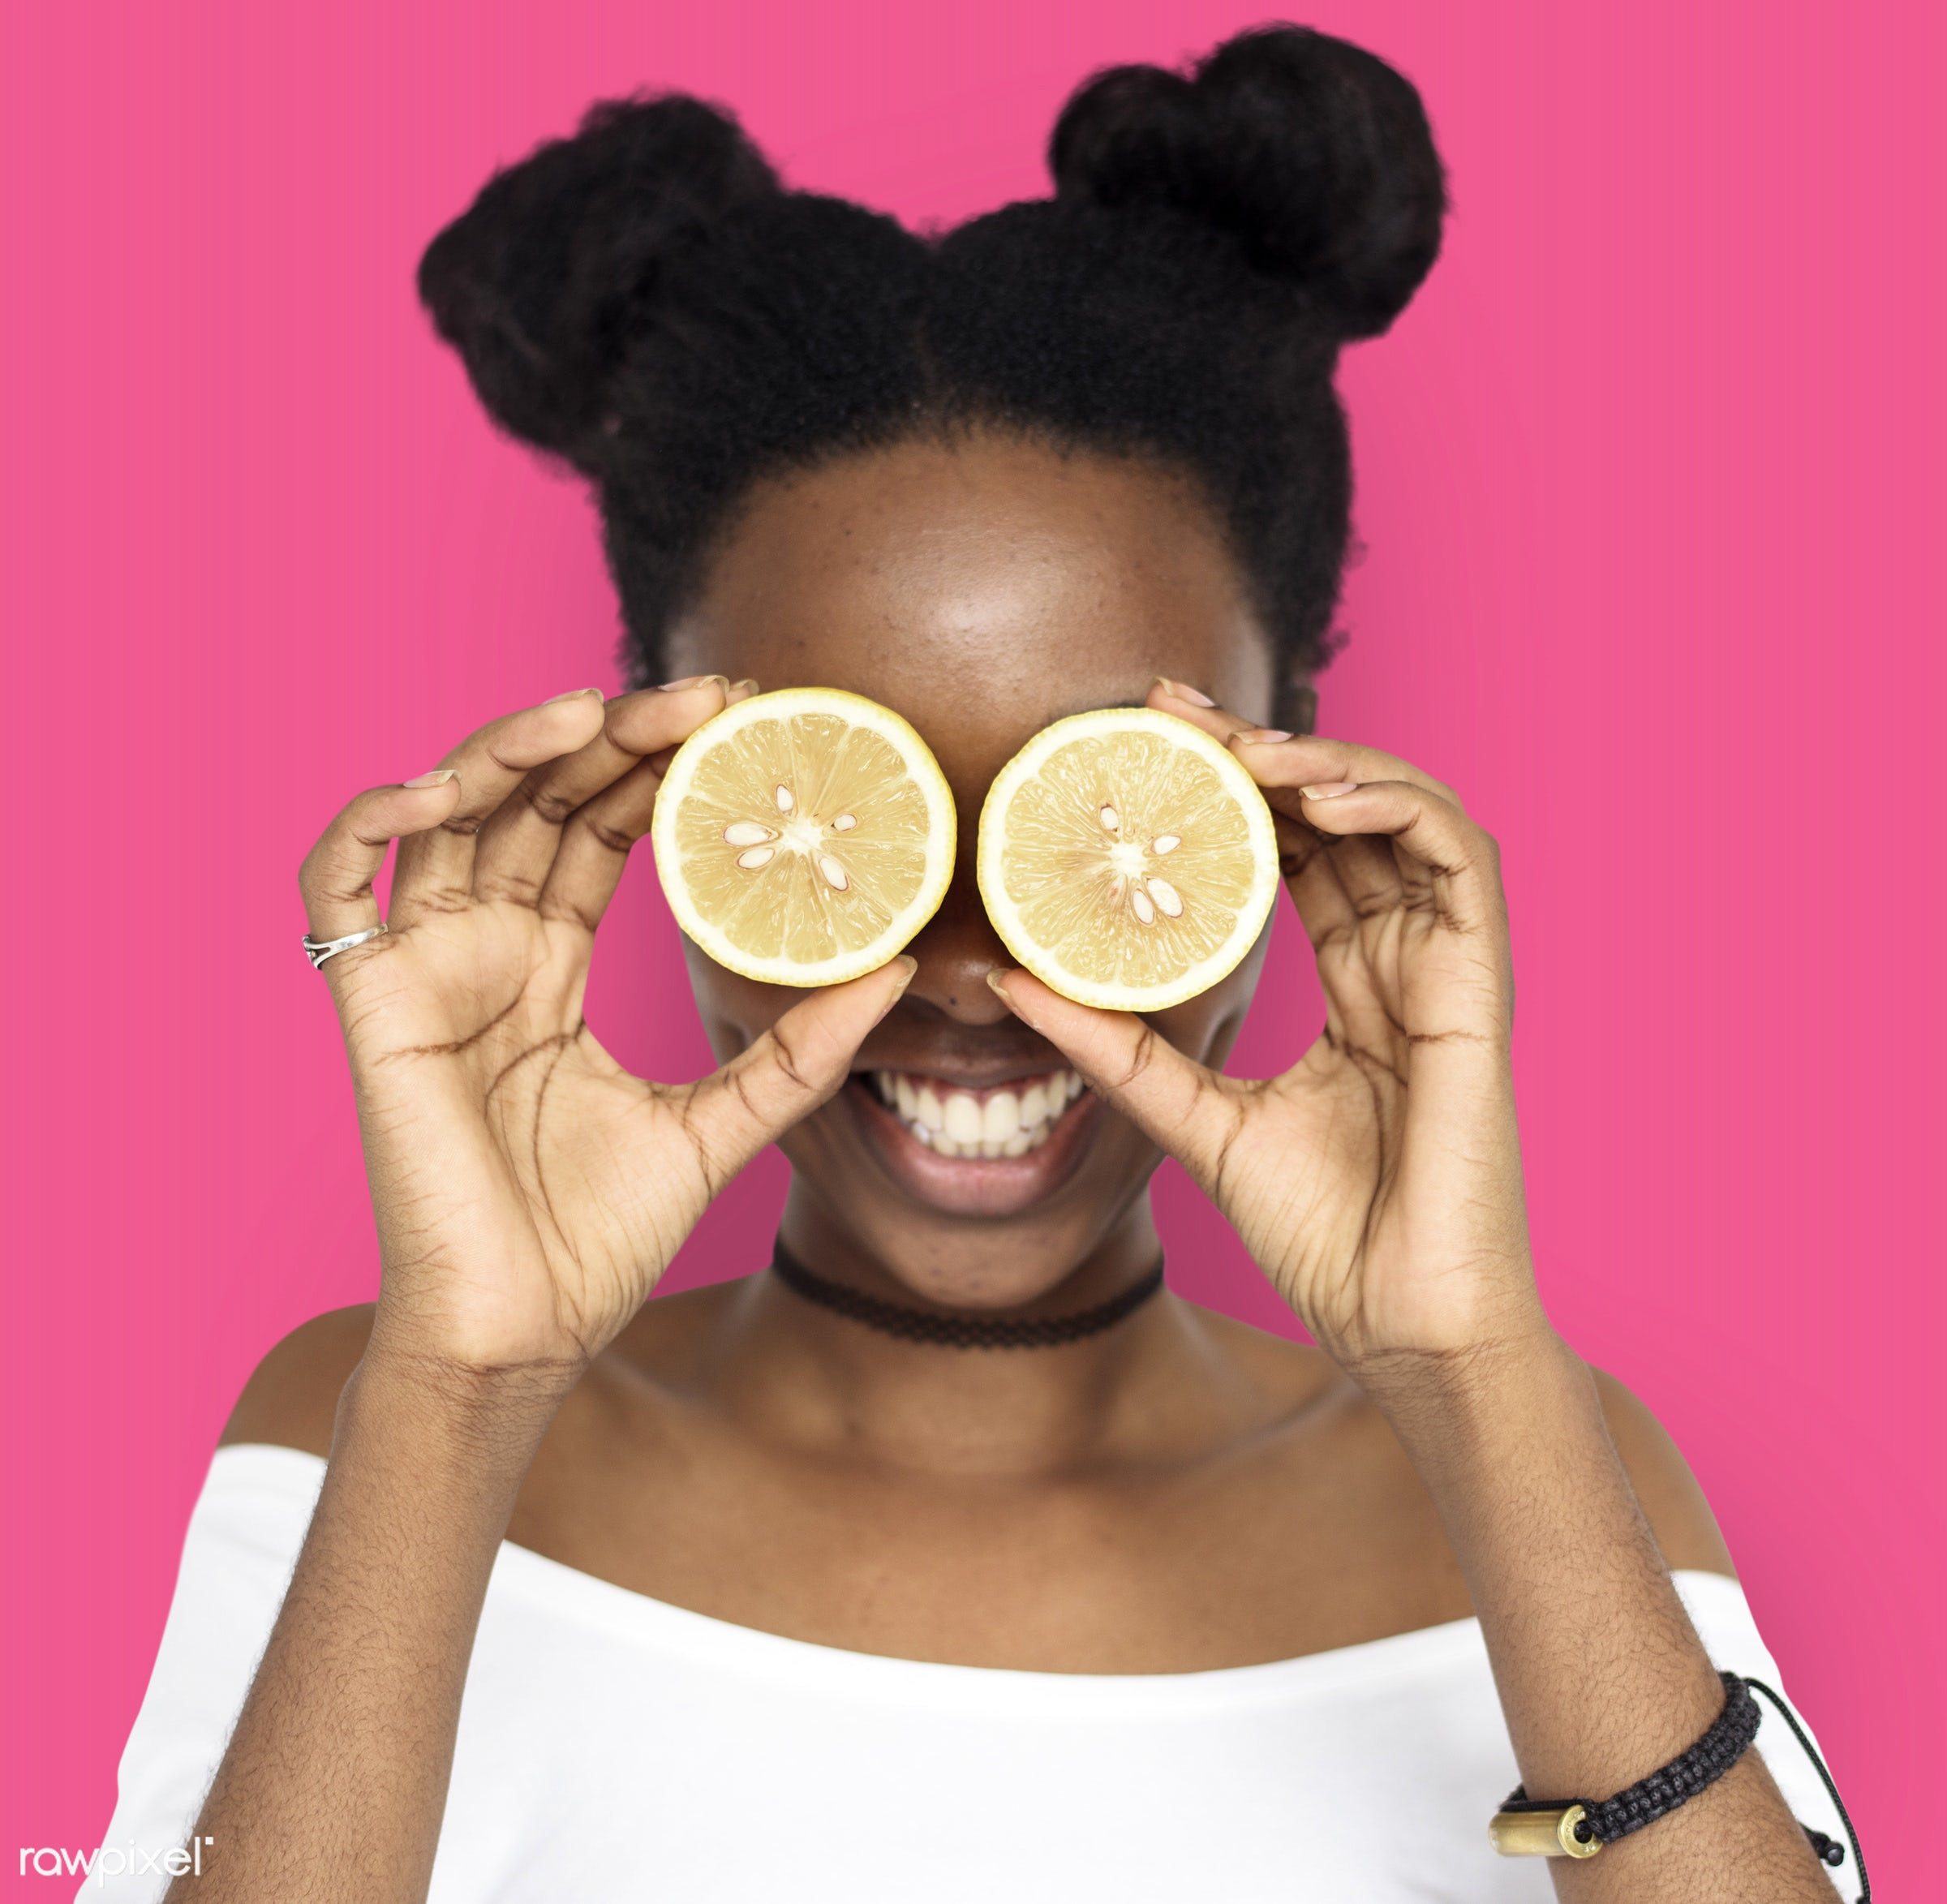 studio, expression, person, people, eyes, cover, woman, pink, cheerful, black, smiling, isolated, fruit, african descent,...